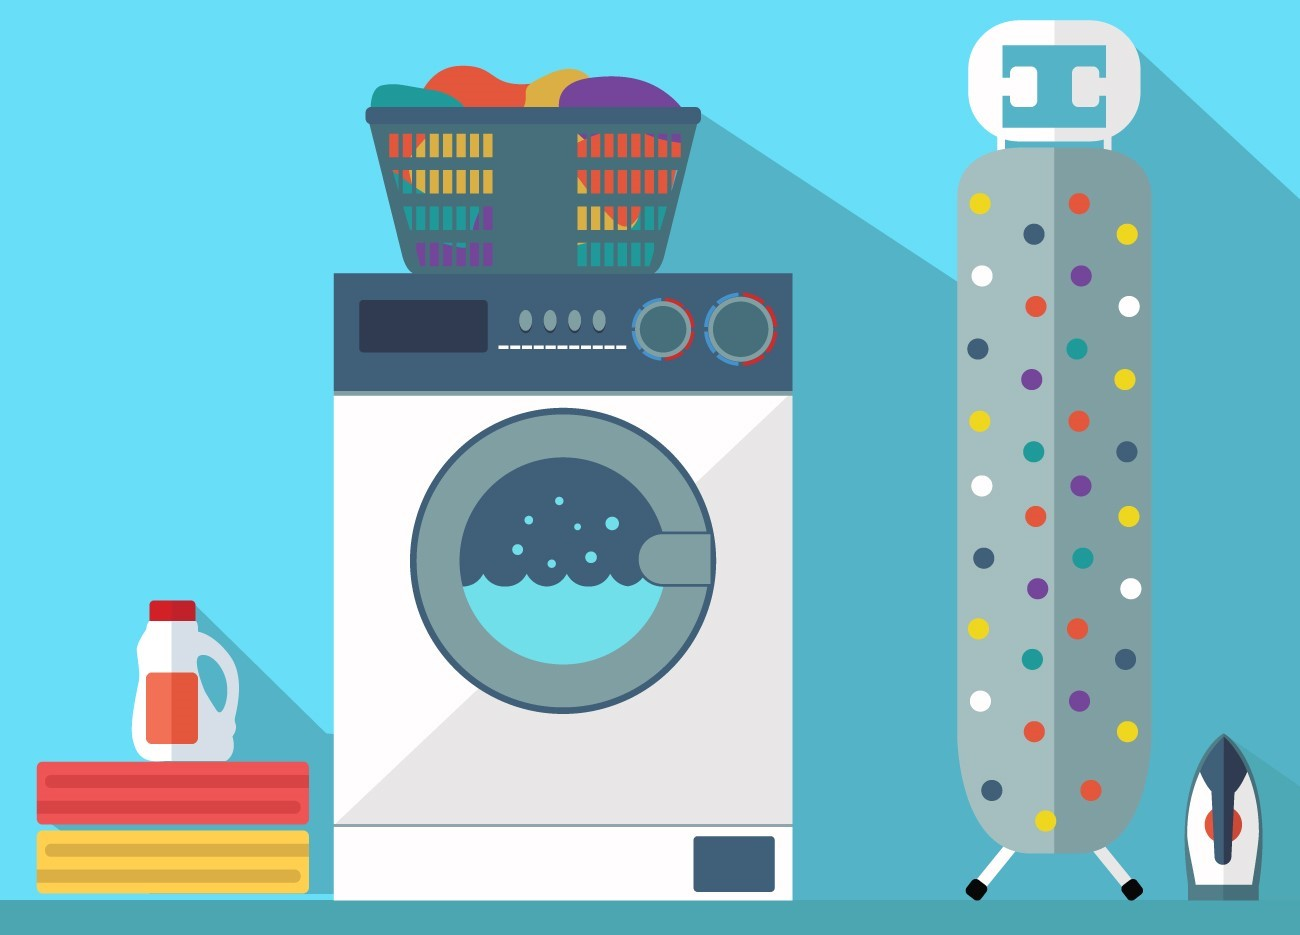 15 Ways to Make Laundry Day More Eczema-Friendly